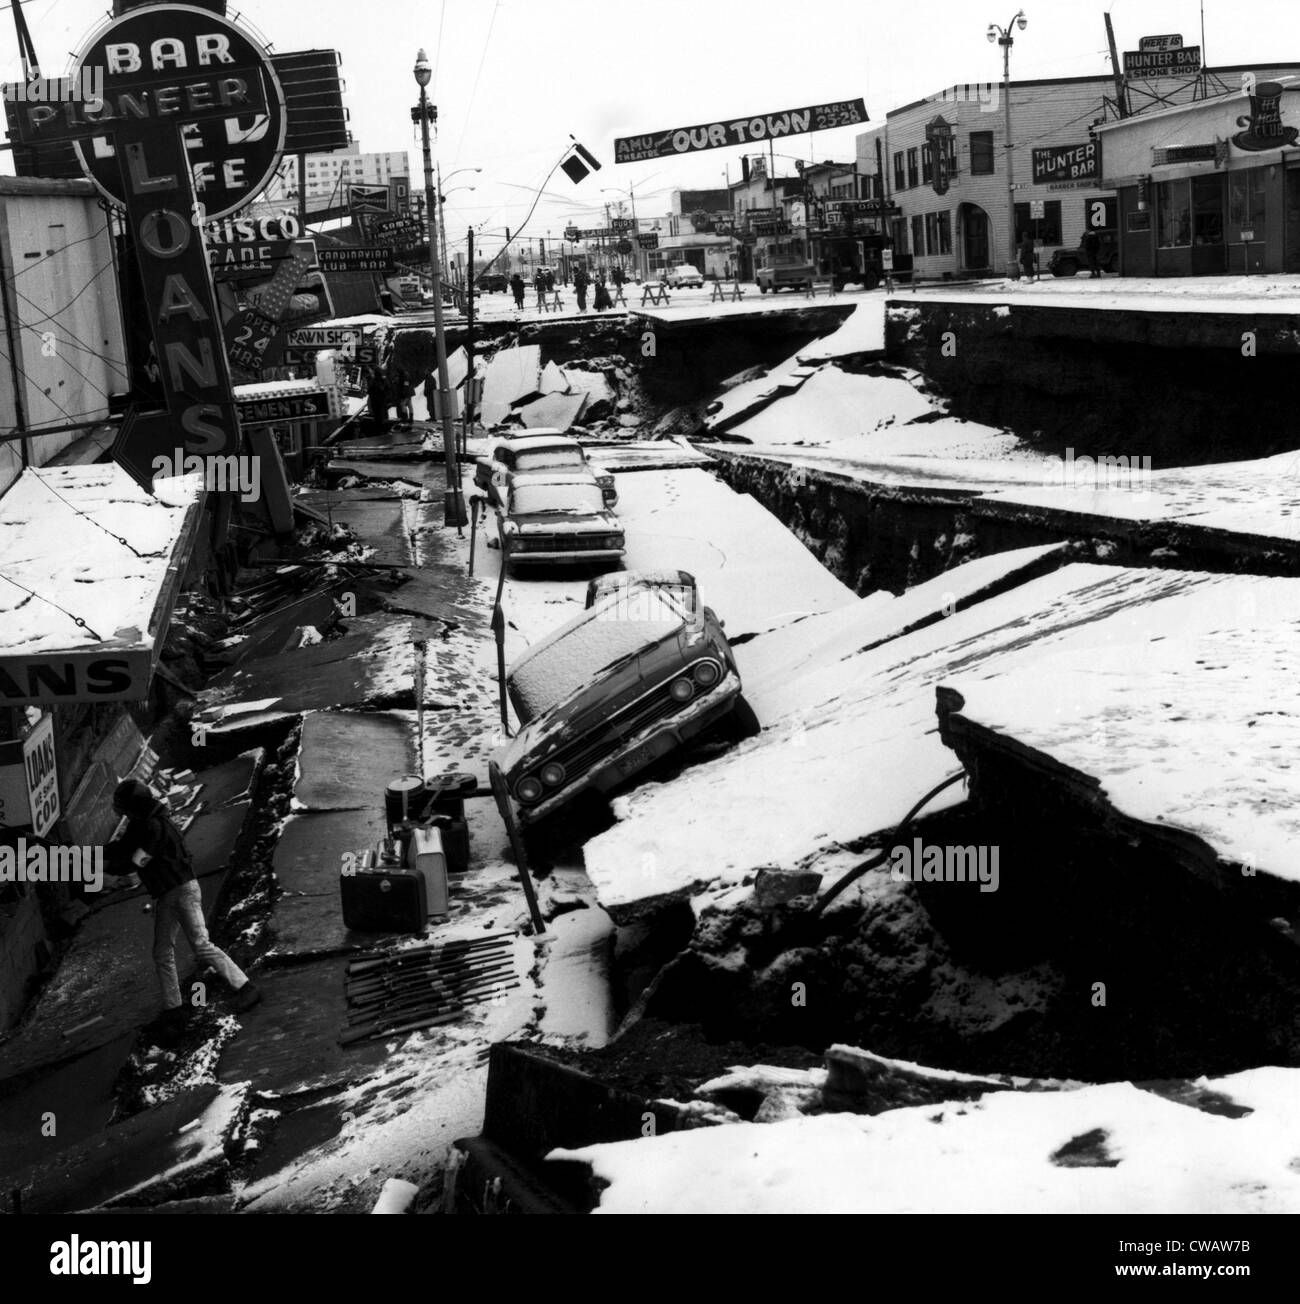 Damage from an earthquake. Anchorage, Alaska. March 27, 1964. Courtesy: CSU Archives/Everett Collection Stock Photo